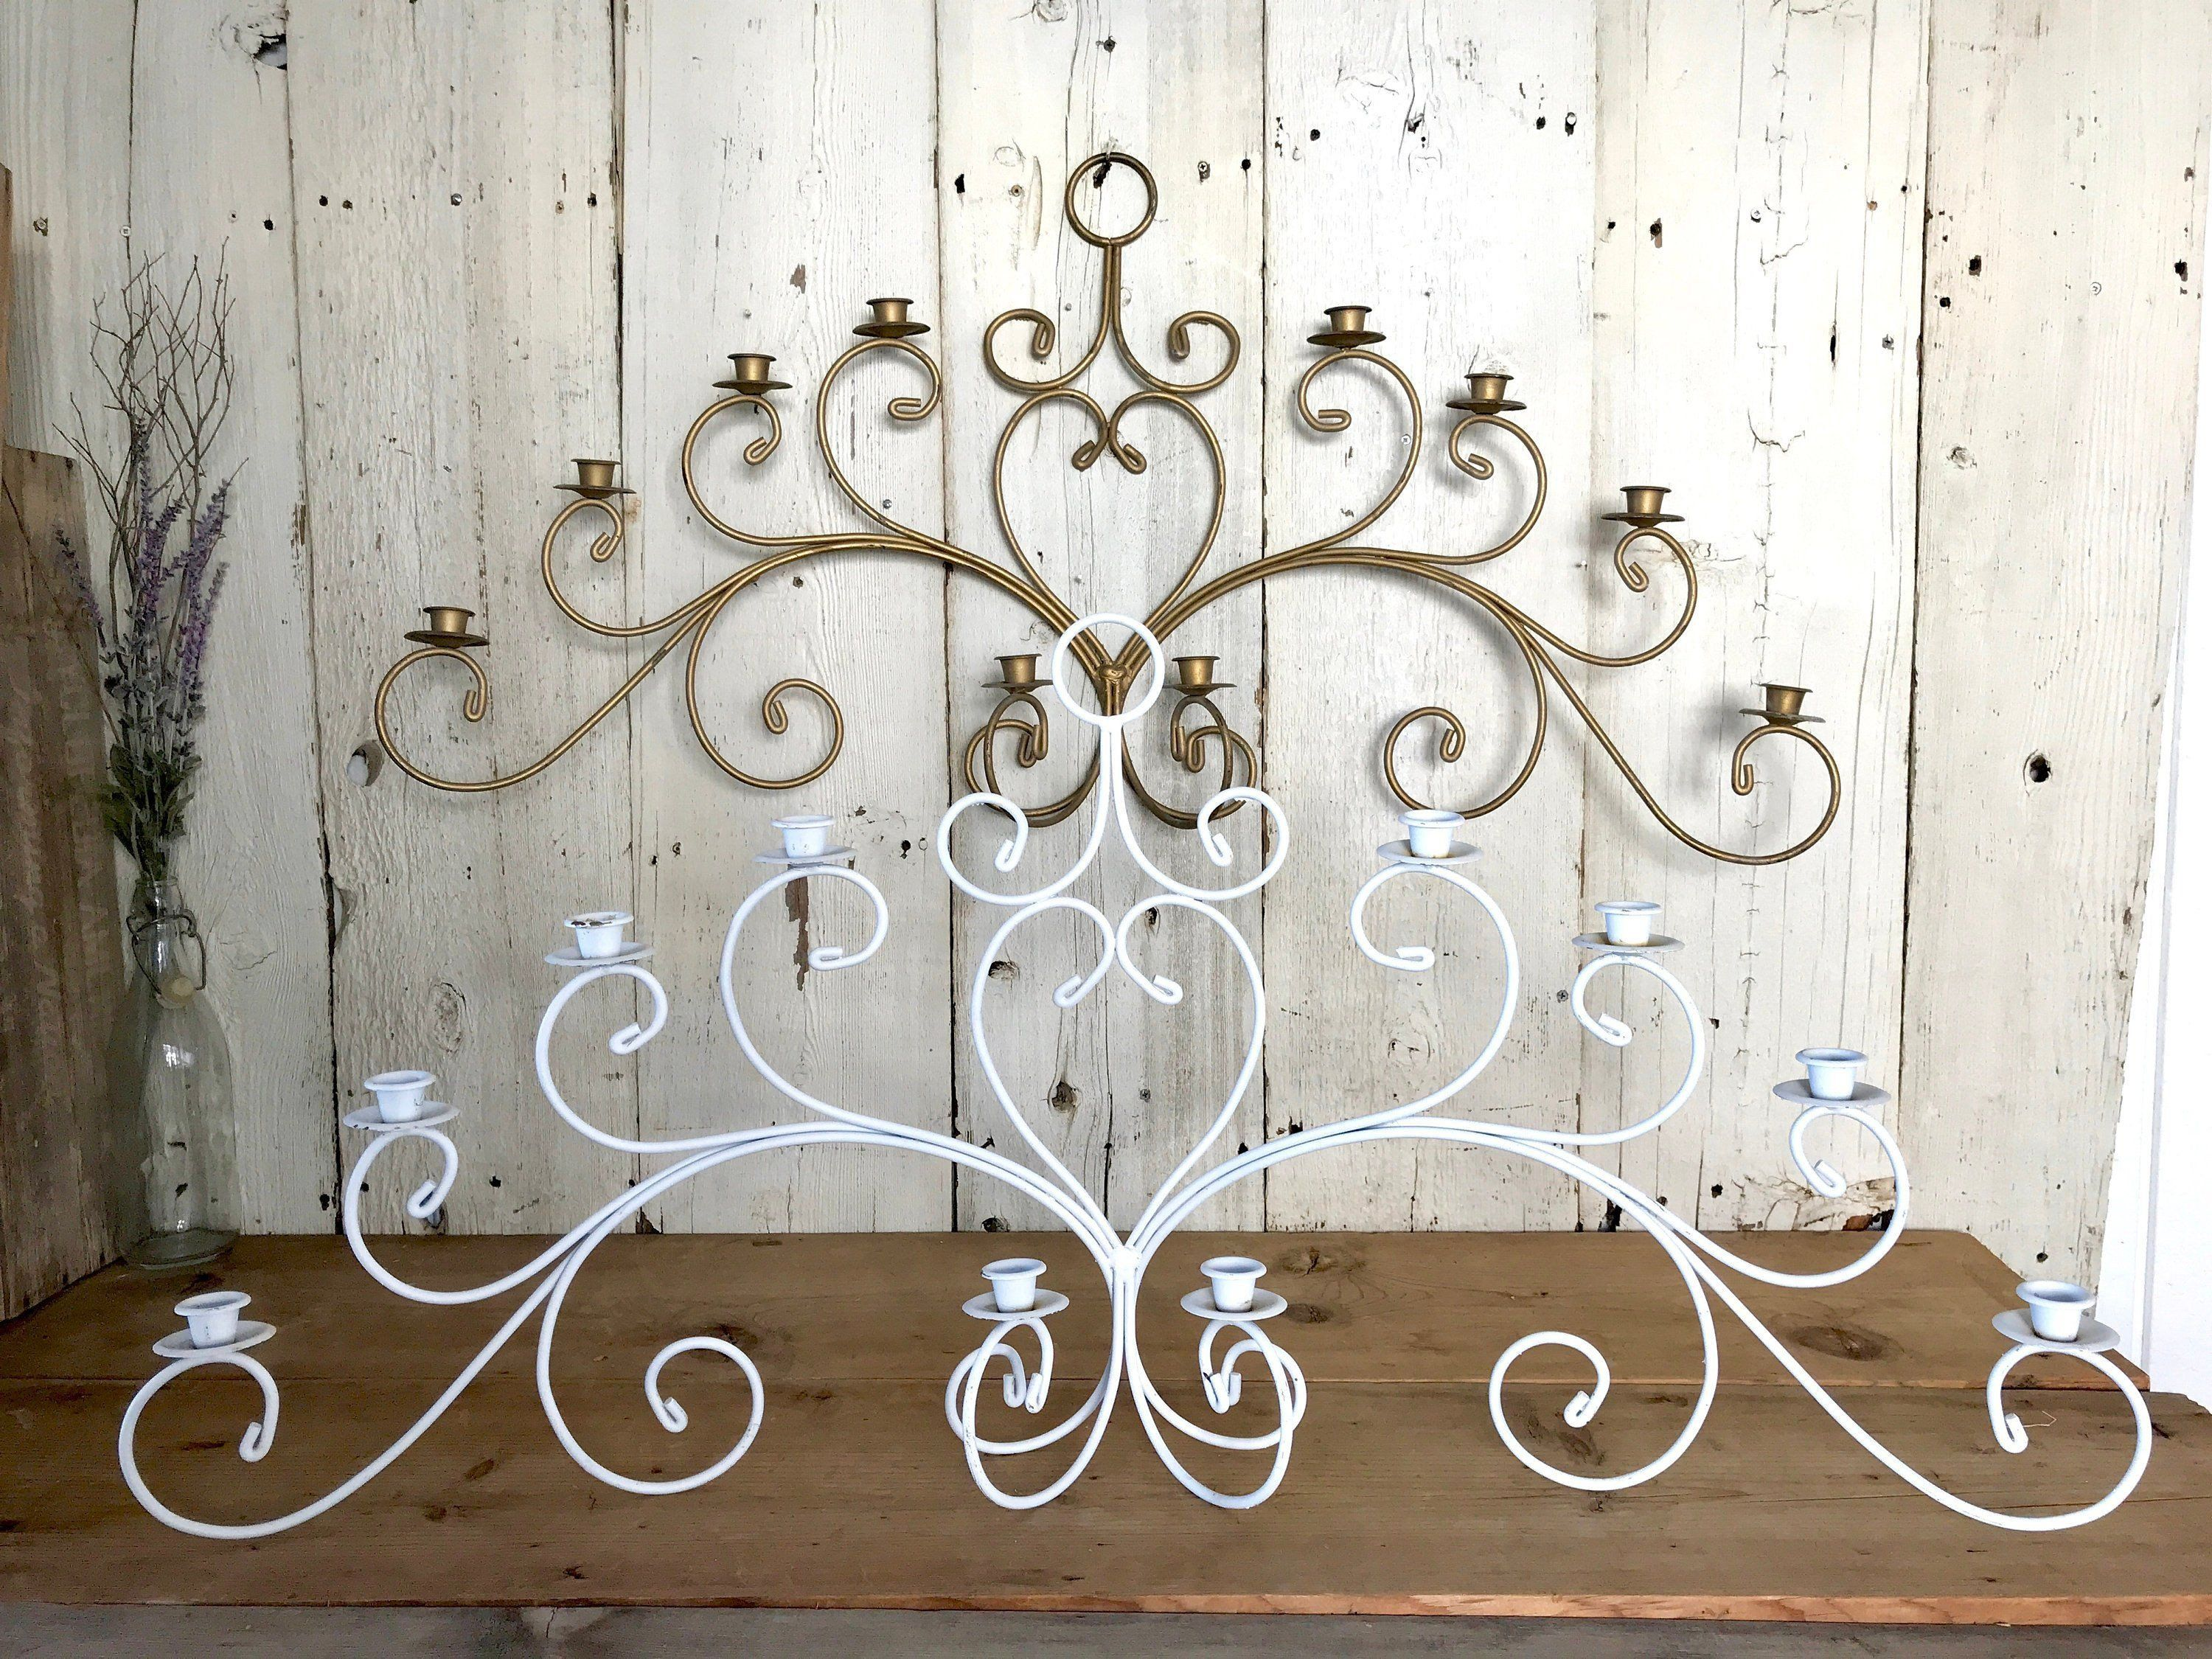 Rustic Wrought Iron Wall Decor Best Of Set Of 2 Wrought Iron Wall Candelabras Matching 10 Arm Wall Dekorasi Dinding Dekor Cermin Dinding